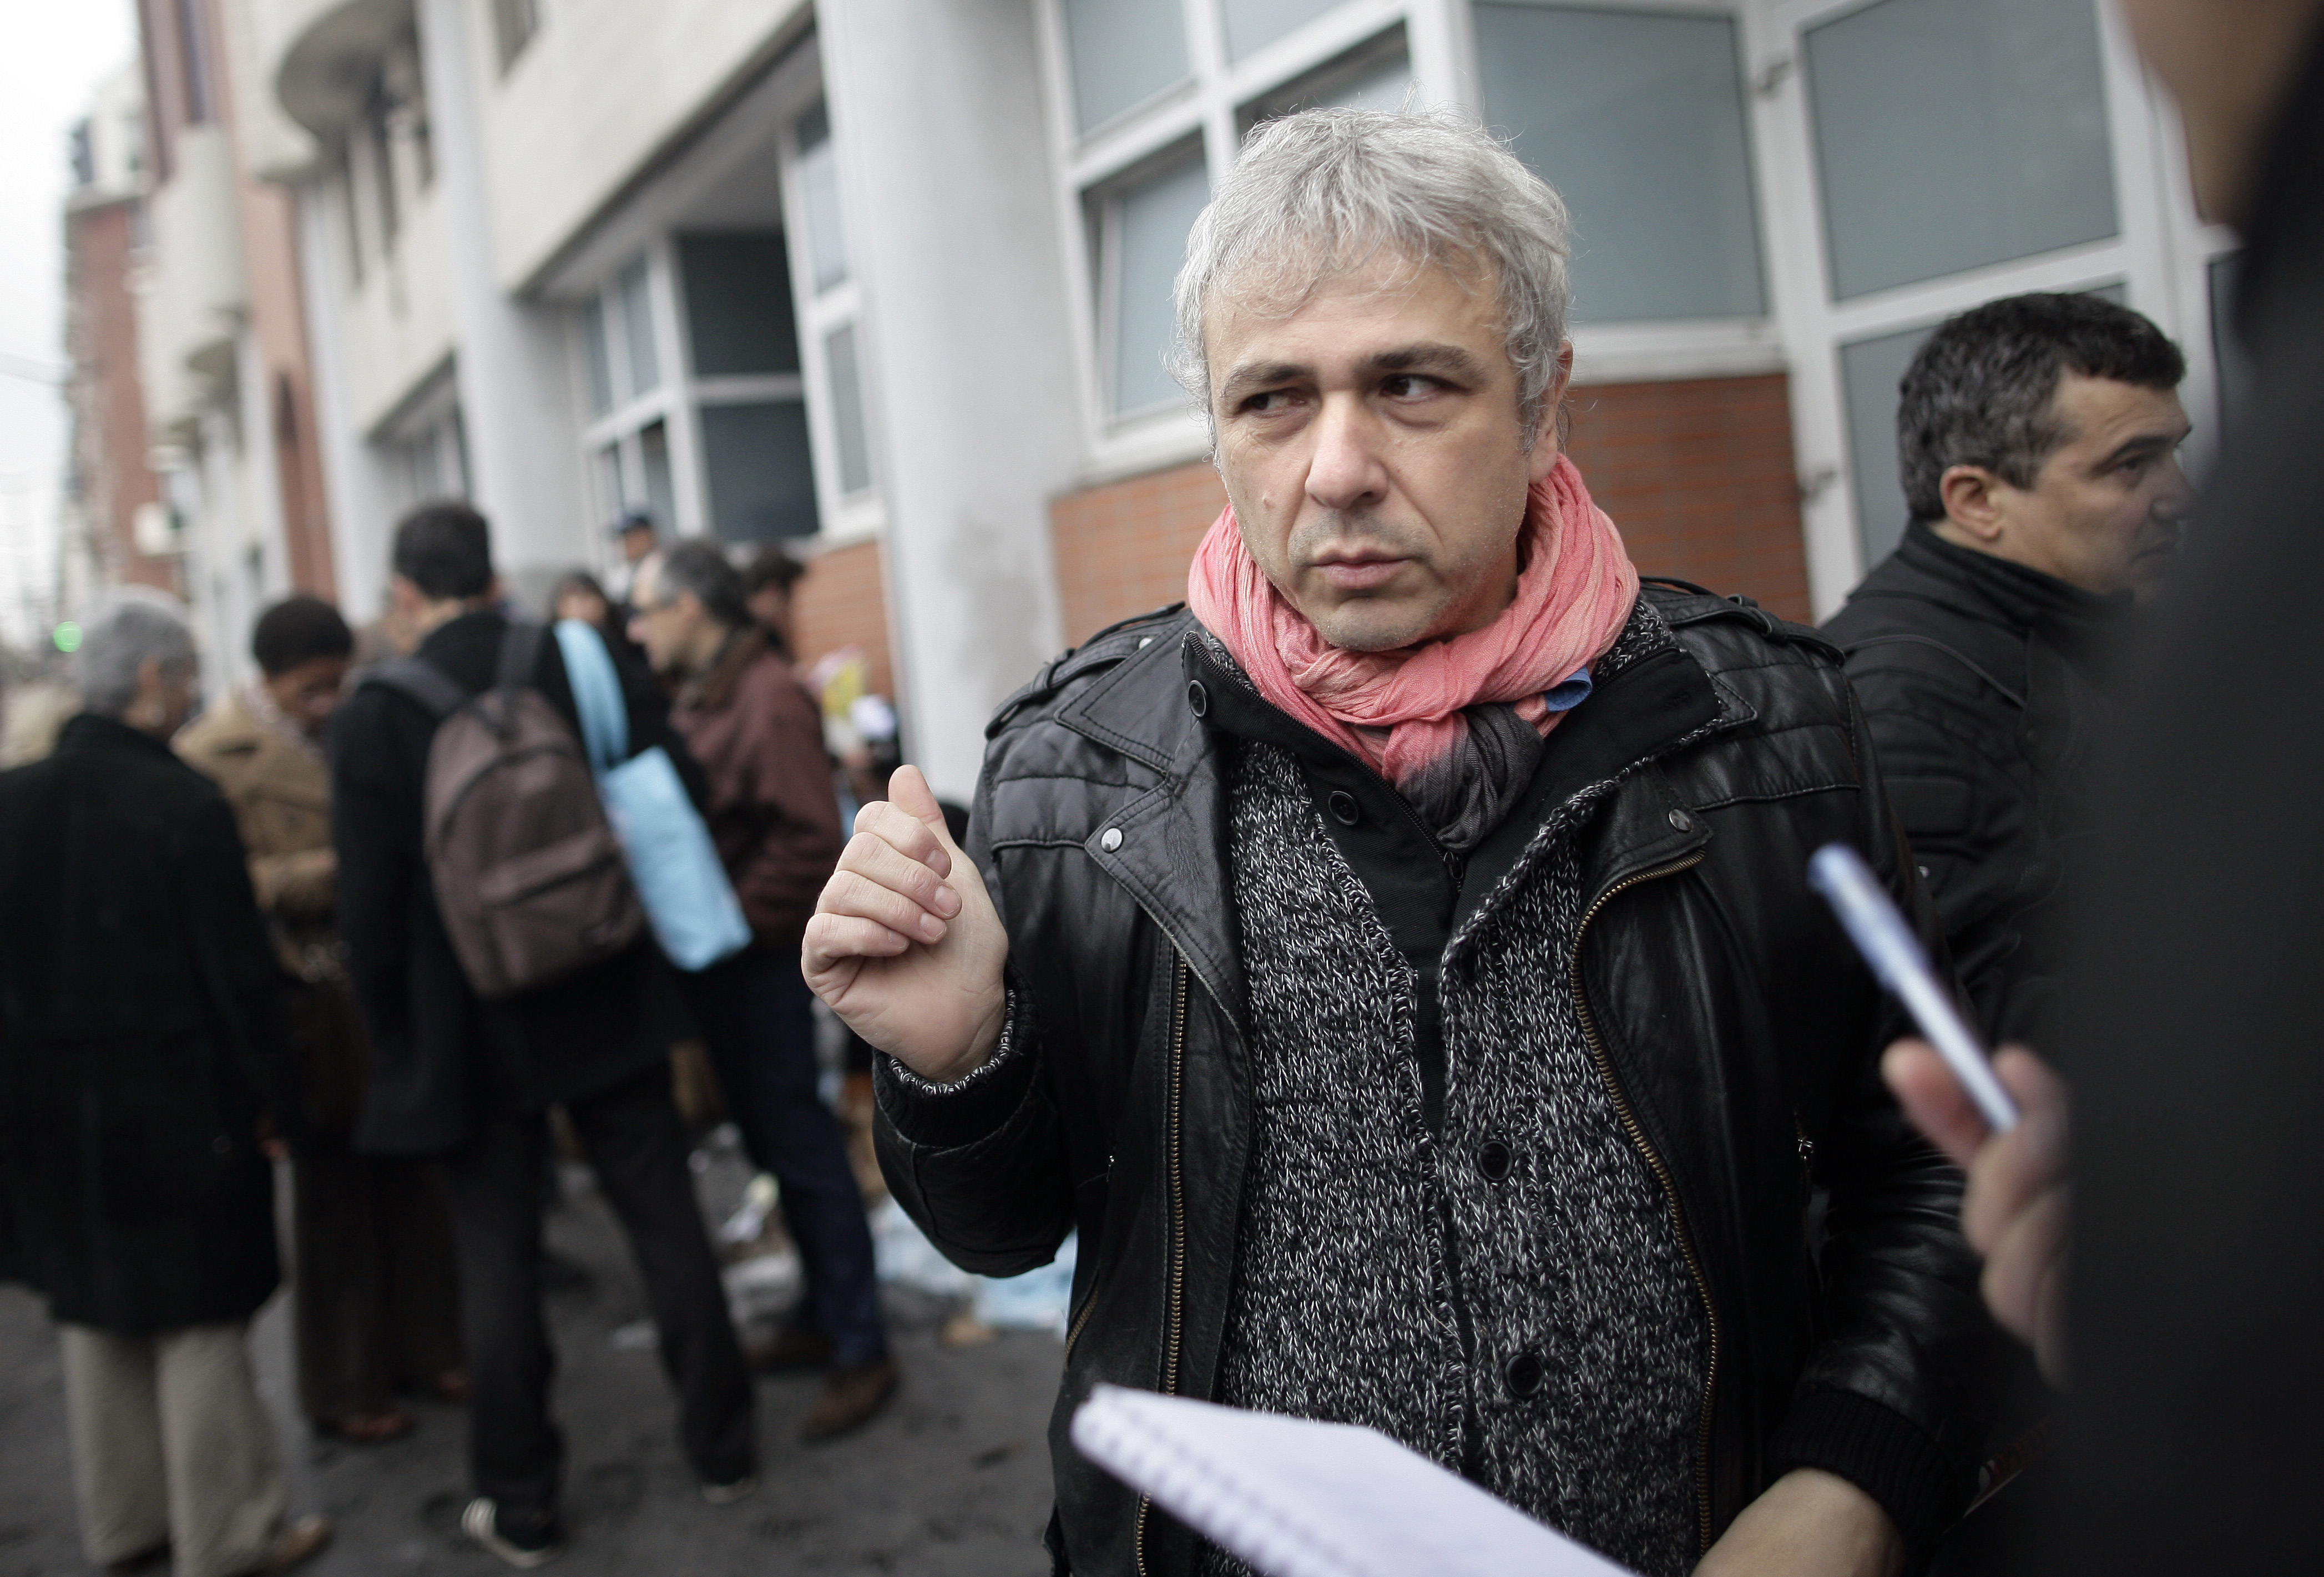 Cartoonist Antonio Fischetti speaks to journalists in front of the offices of French satirical newspaper Charlie Hebdo on Nov. 2, 2011, in Paris after they were destroyed by a petrol-bomb attack overnight